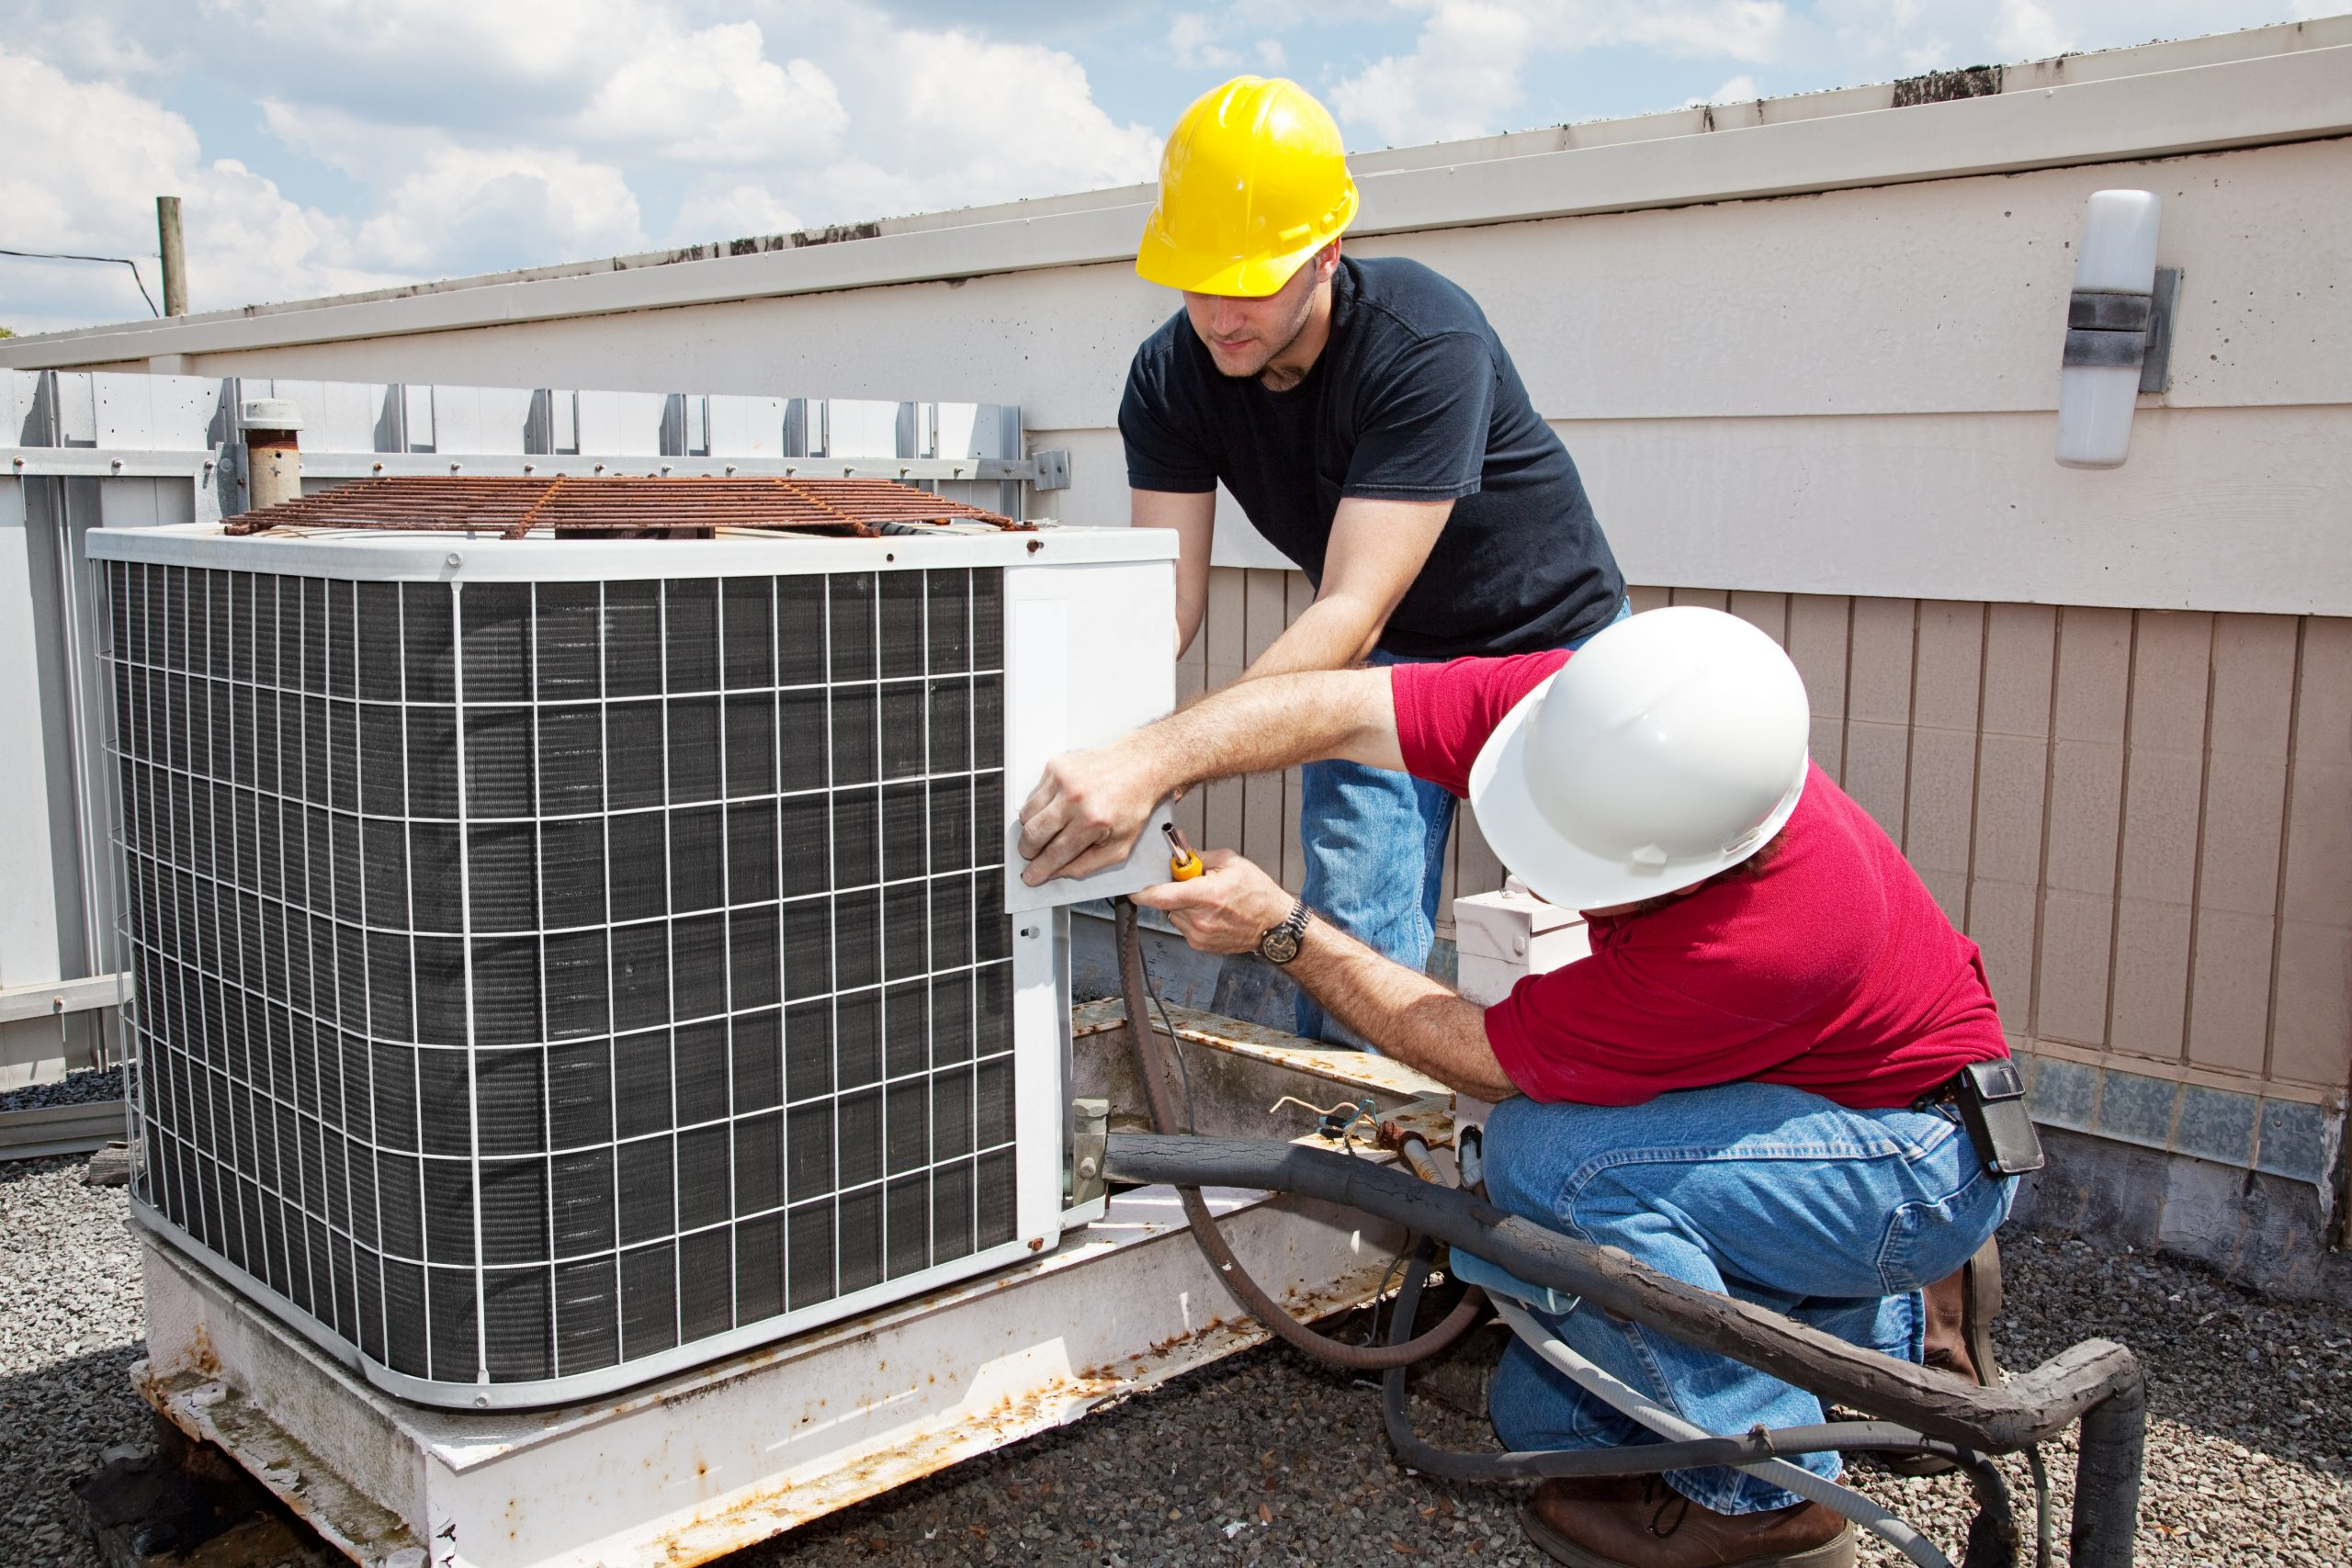 wo workers on the roof of a building working on the air conditioning unit.